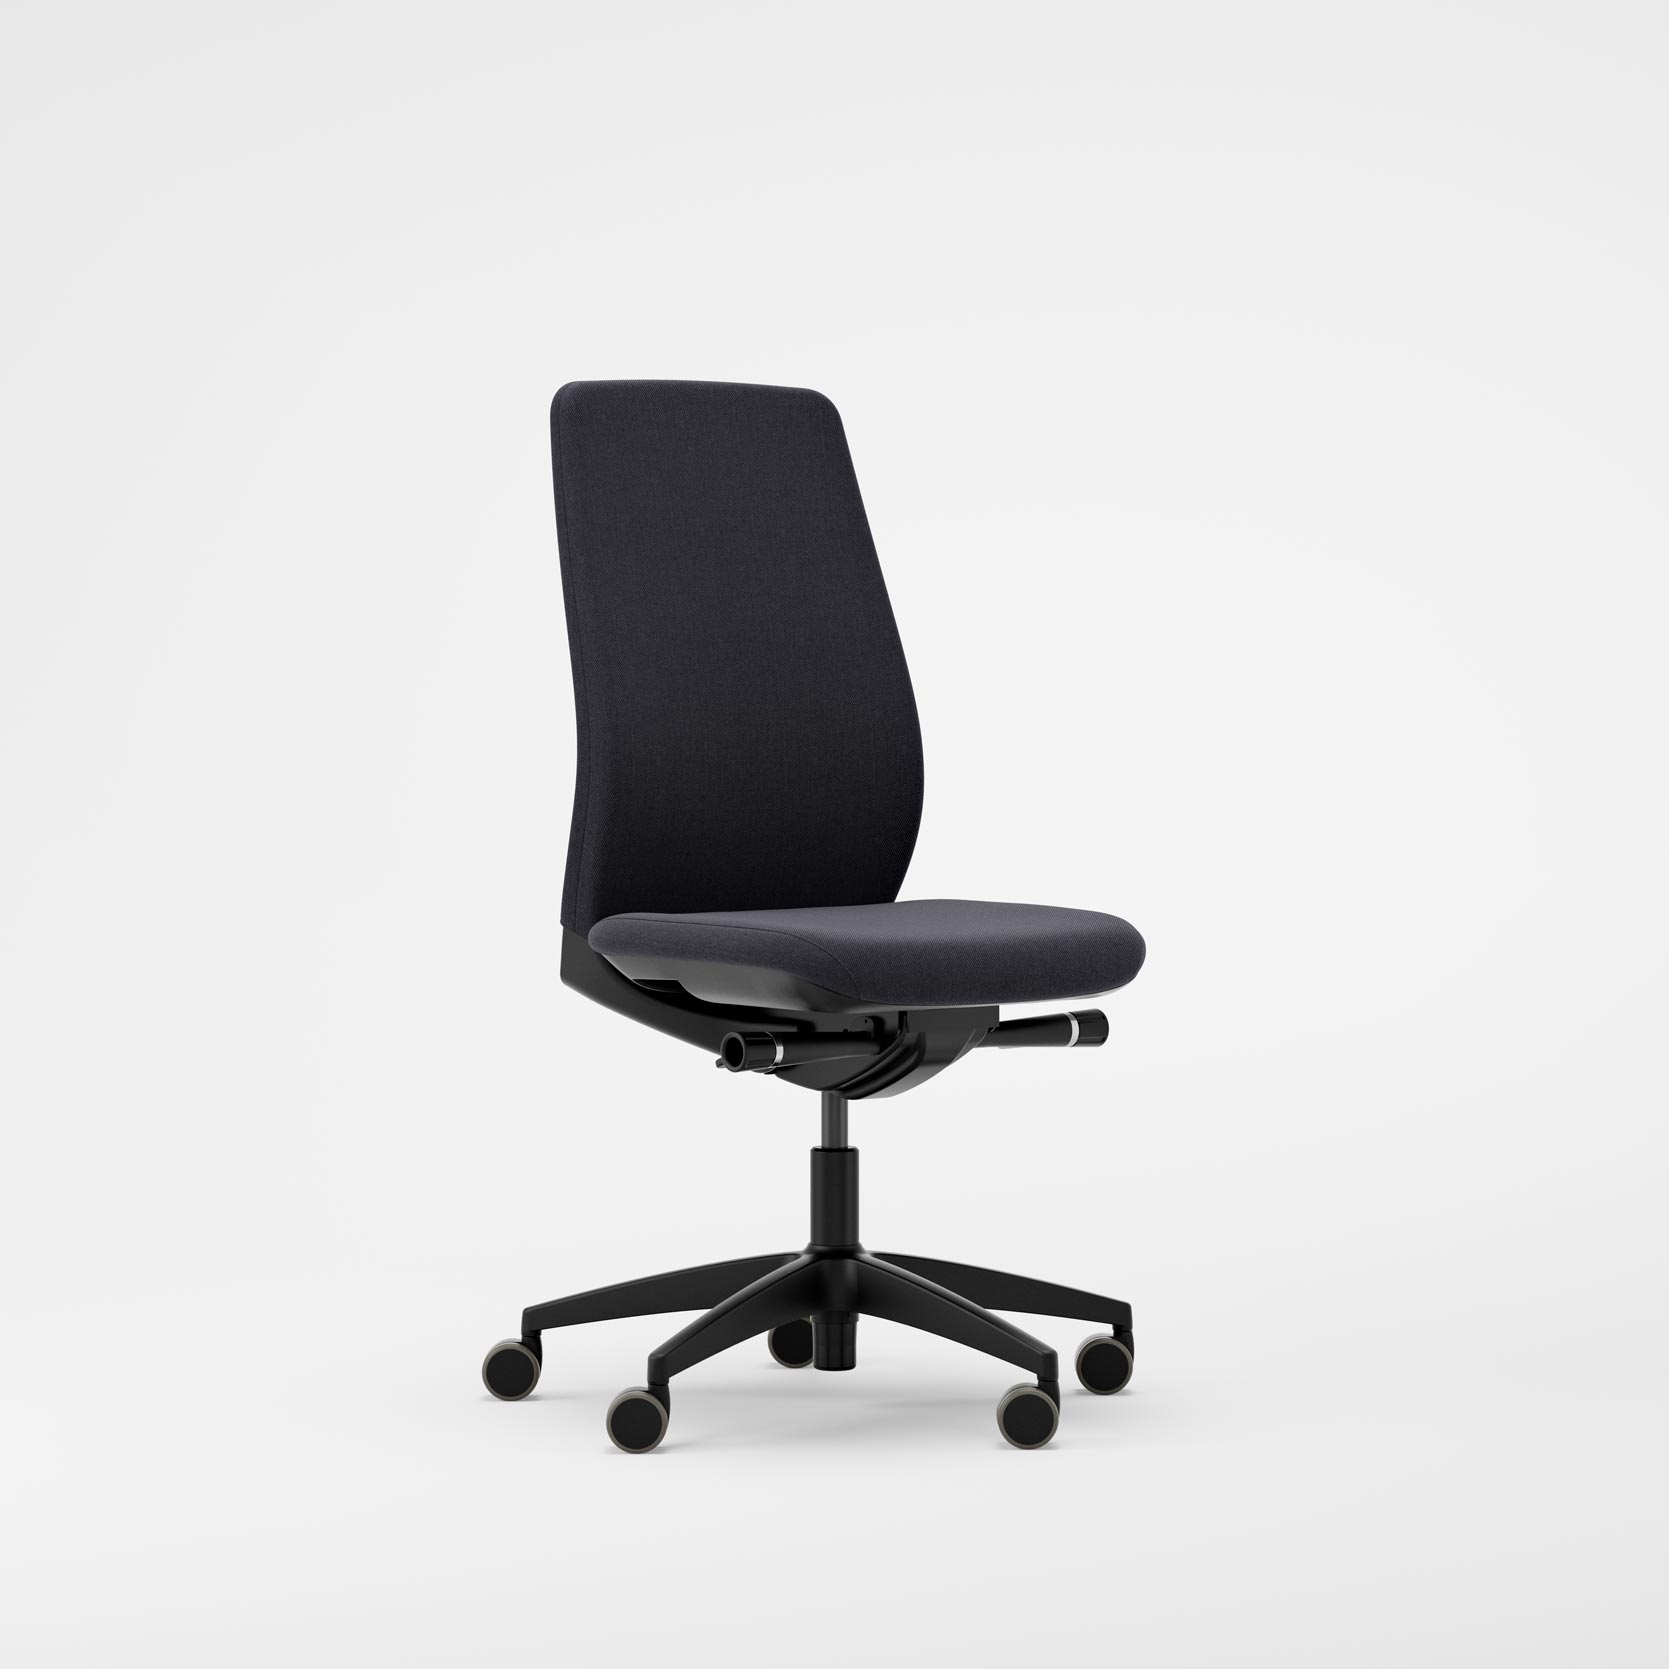 Temo - Desk chairs (Office products)